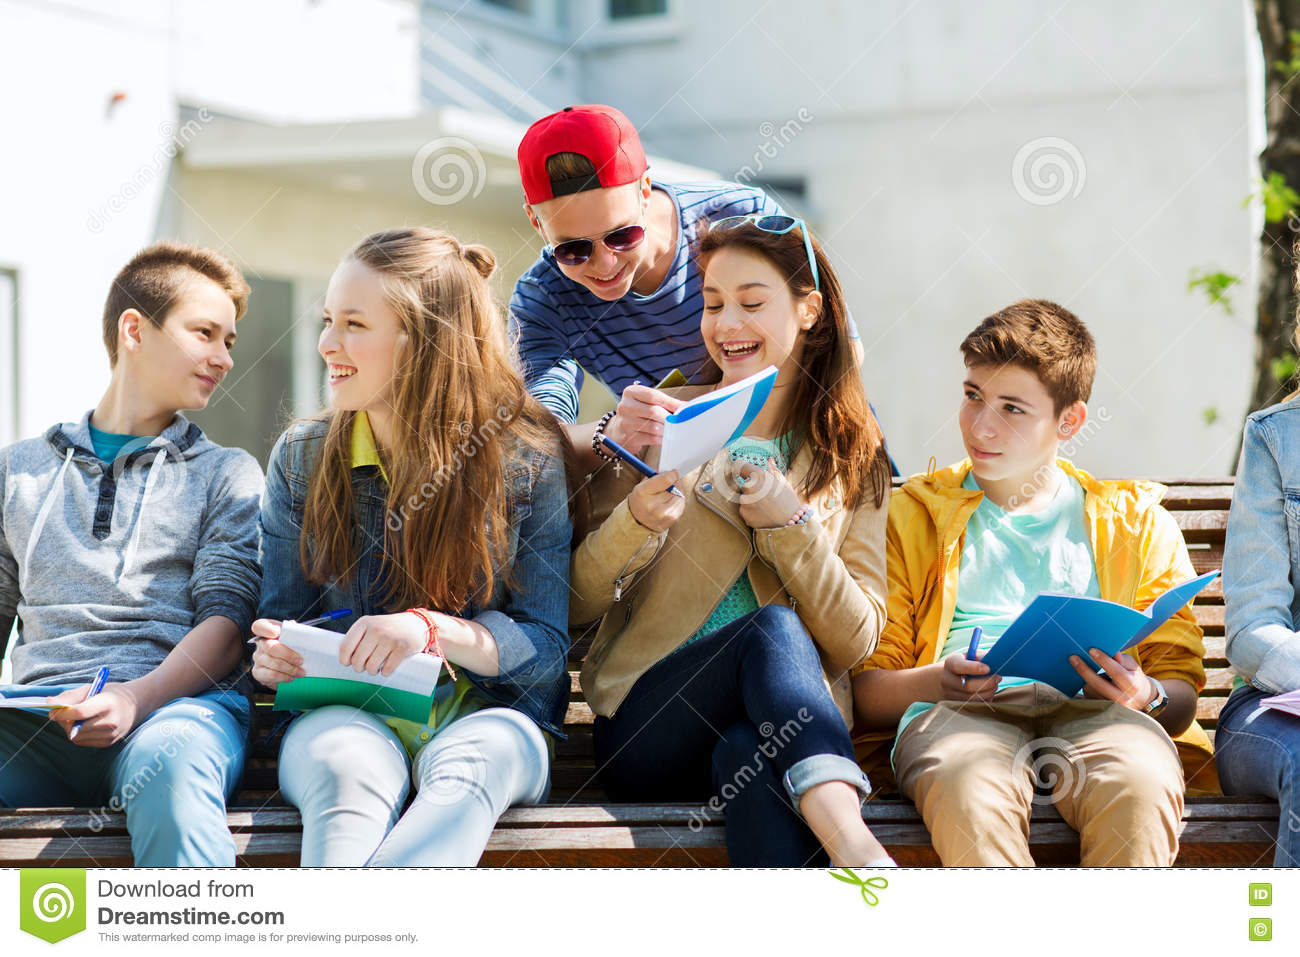 Group of students with notebooks at school yard